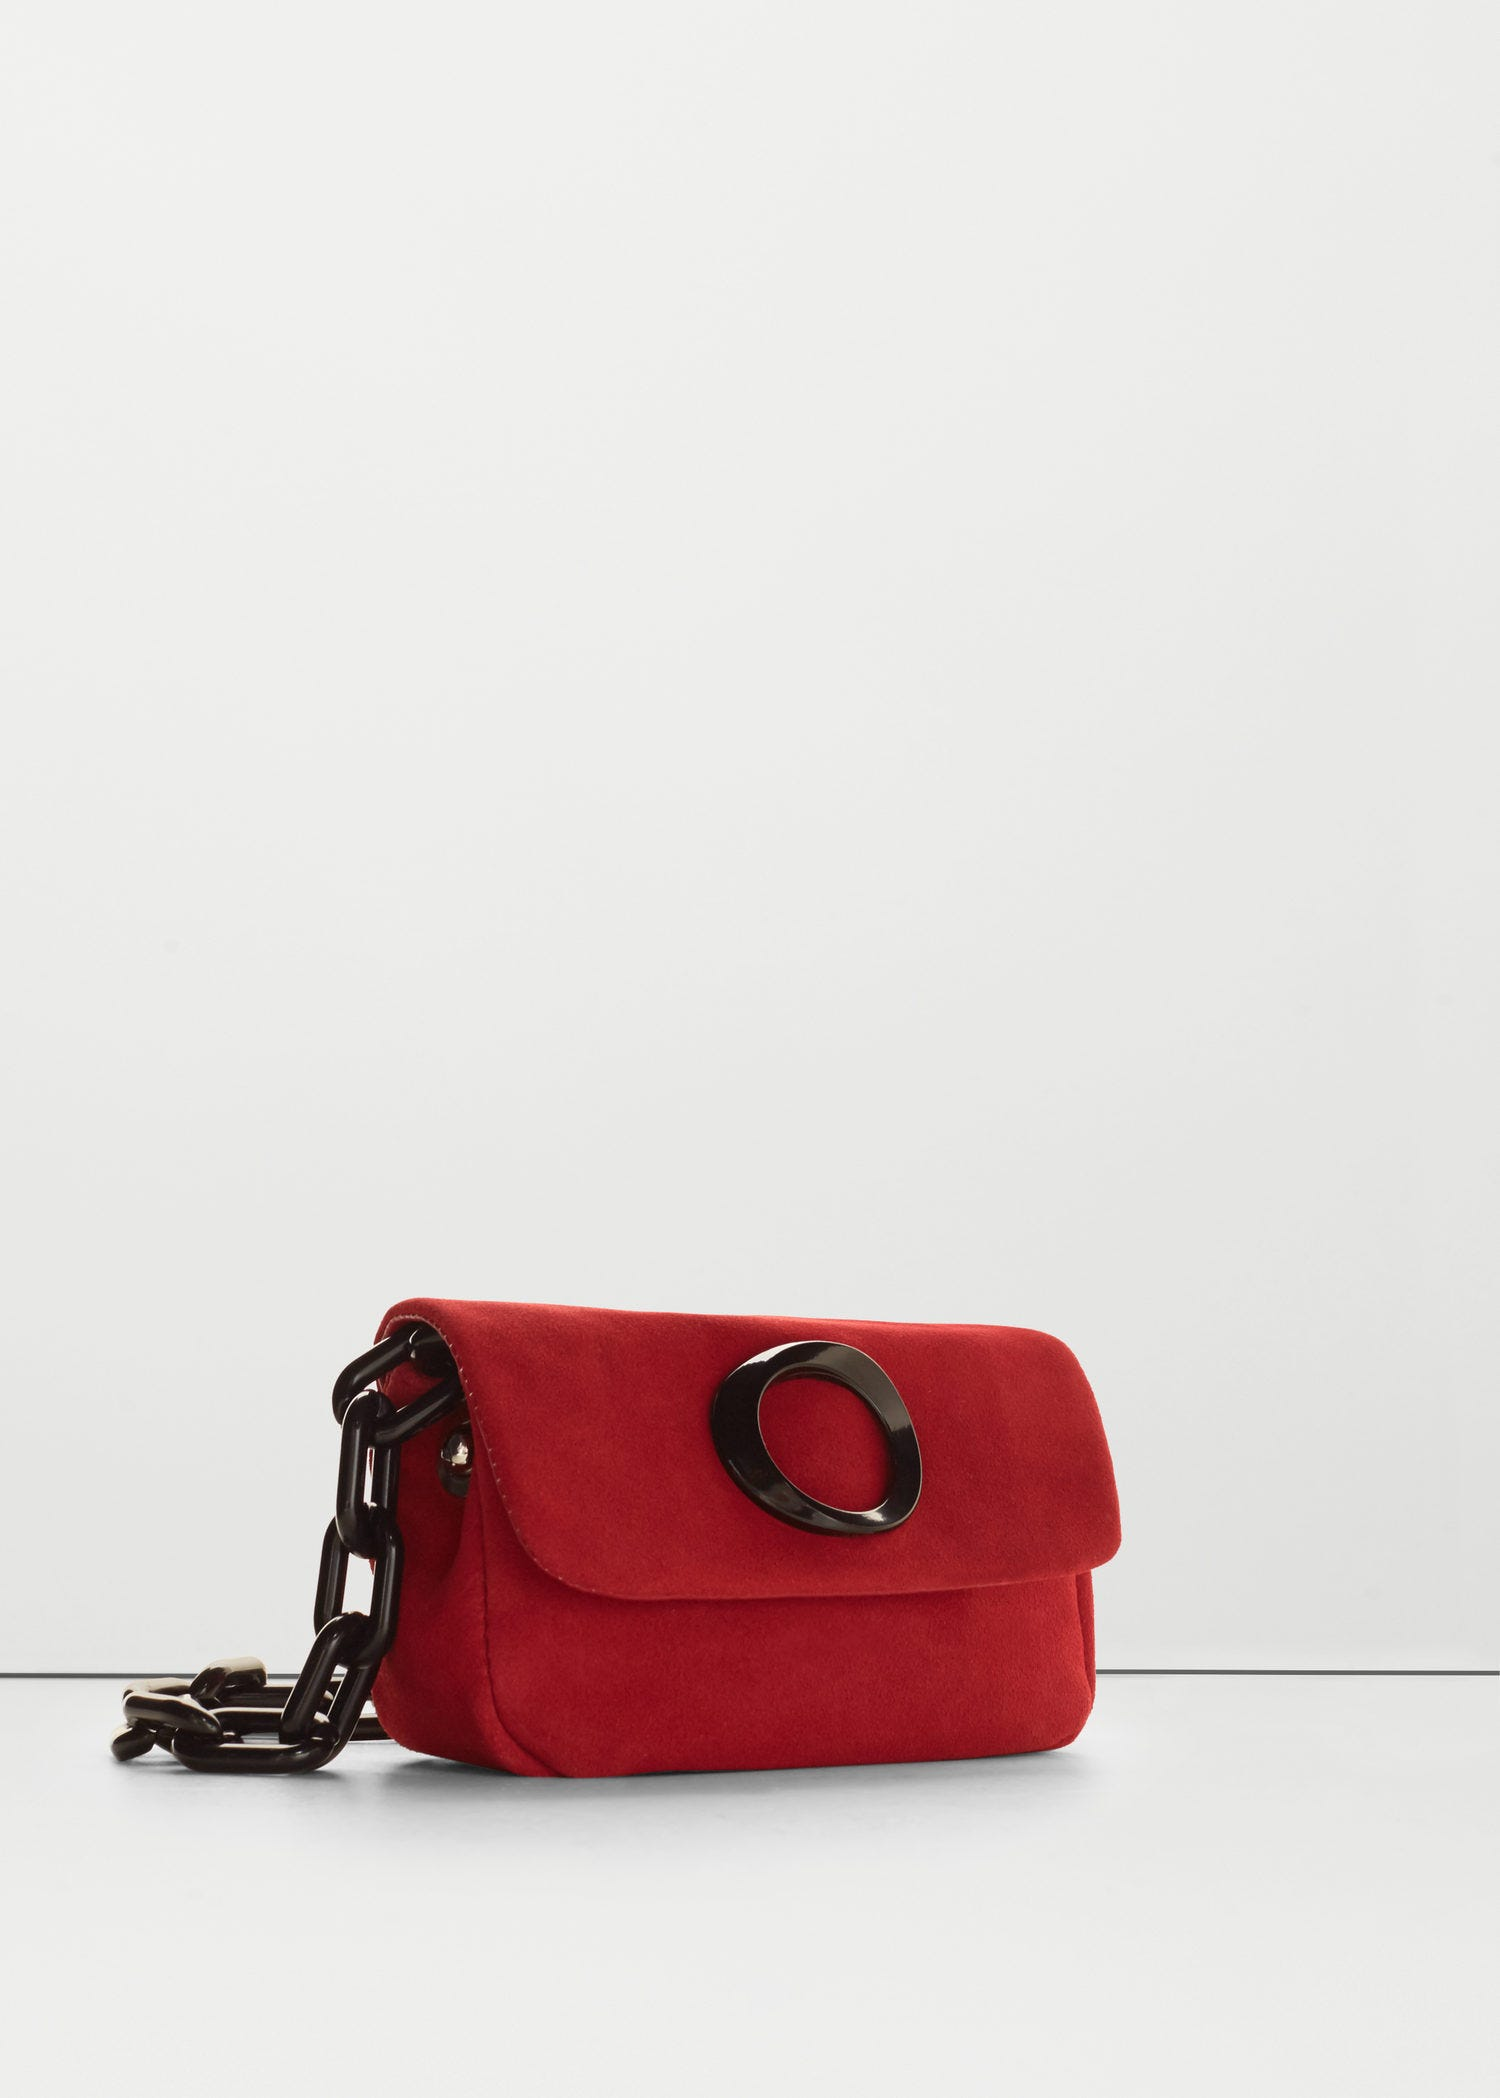 Best Crossbody Bags For Breast Shapes 2bced50b43f6b